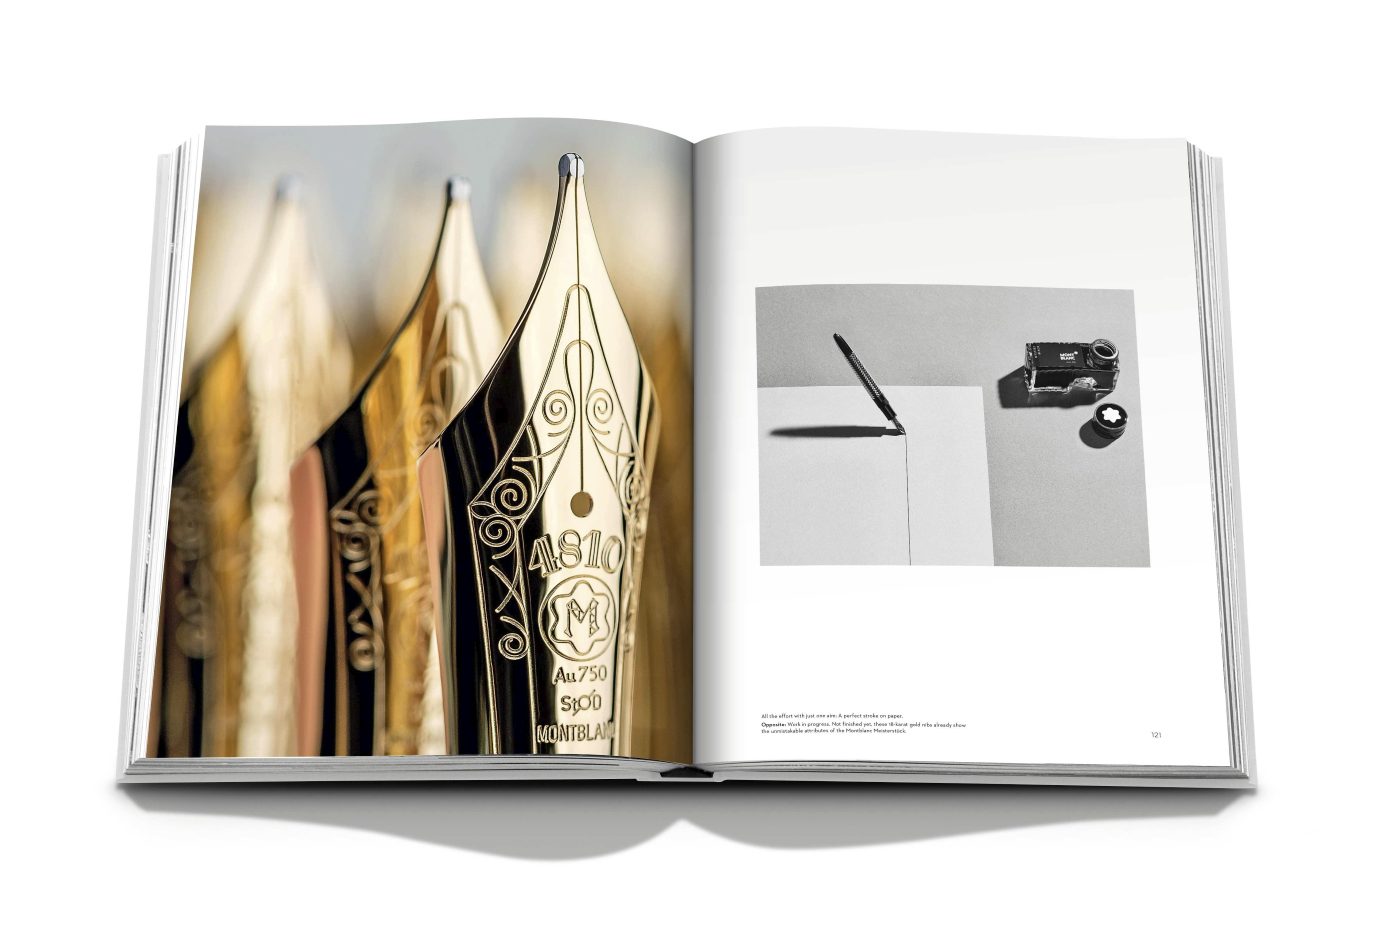 montblanc_inspire_writing_spread_6_-_europa_star_magazine_2021